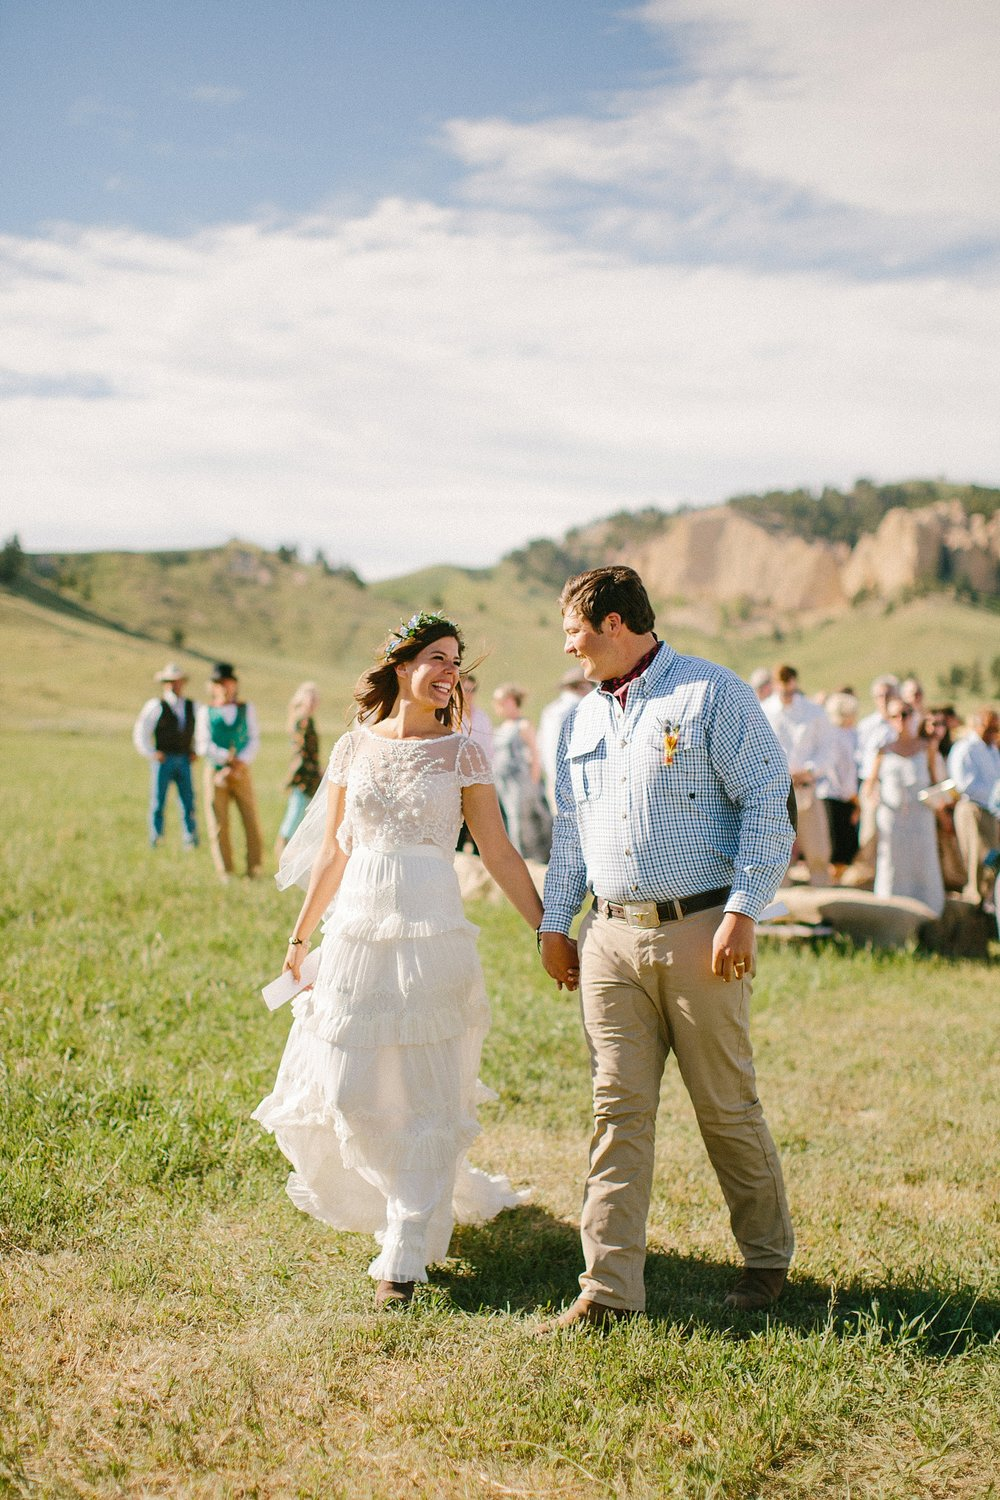 wyoming-destination-wedding-cattle-ranch-west_0031.jpg